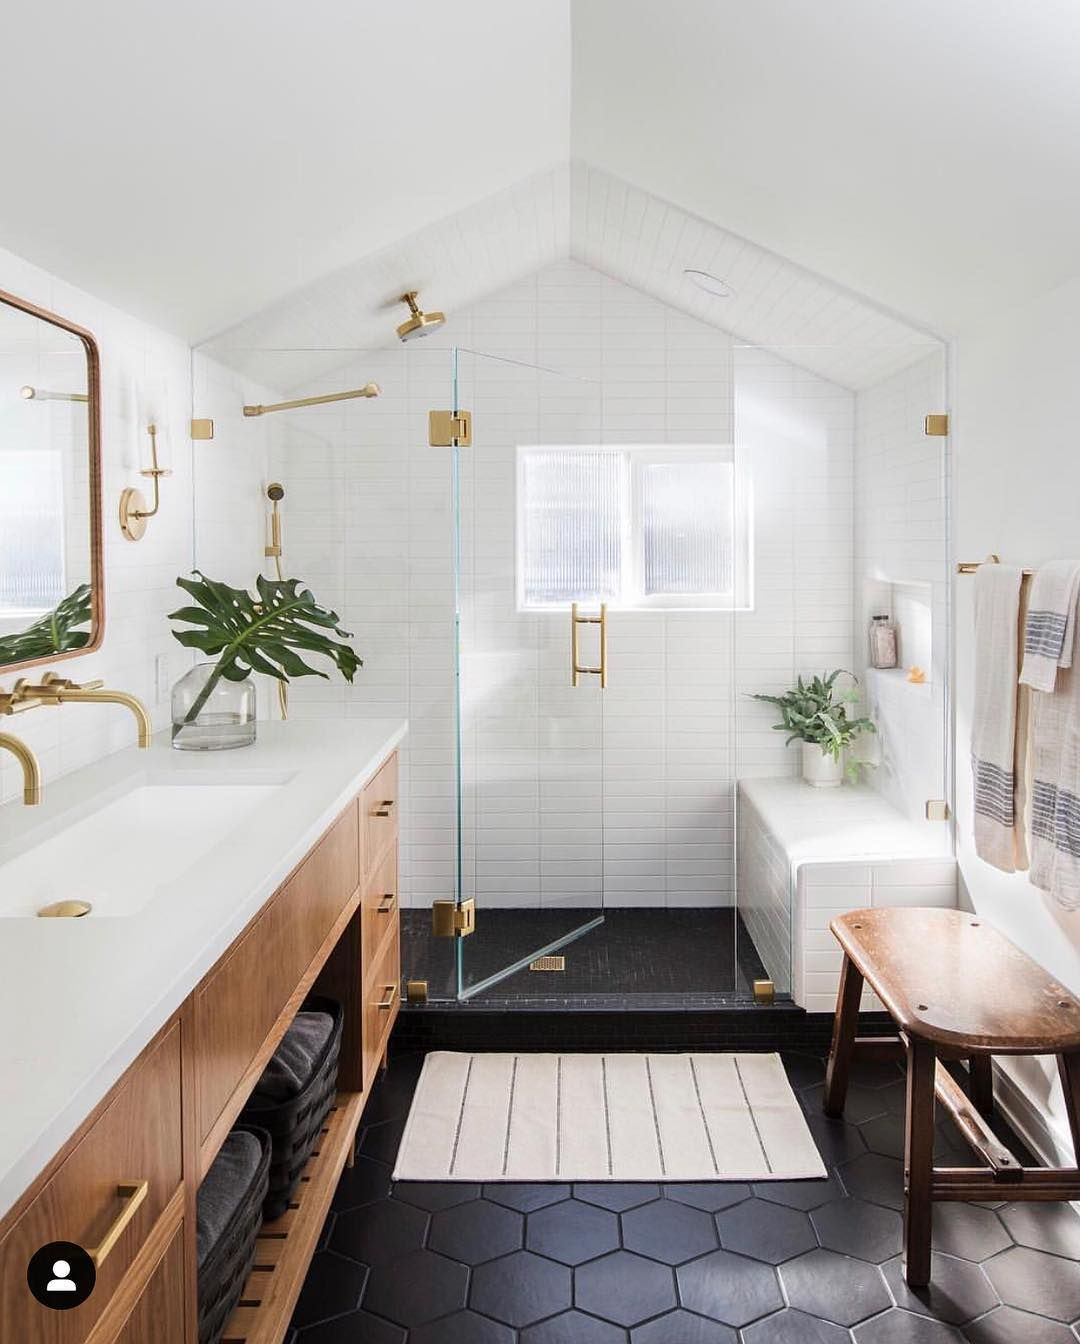 Royal Bohemian Home On Instagram This Space Is Giving Me Major Inspiration For Our Next Bathroom Beautiful Bathroom Decor Beautiful Bathrooms Bathroom Decor